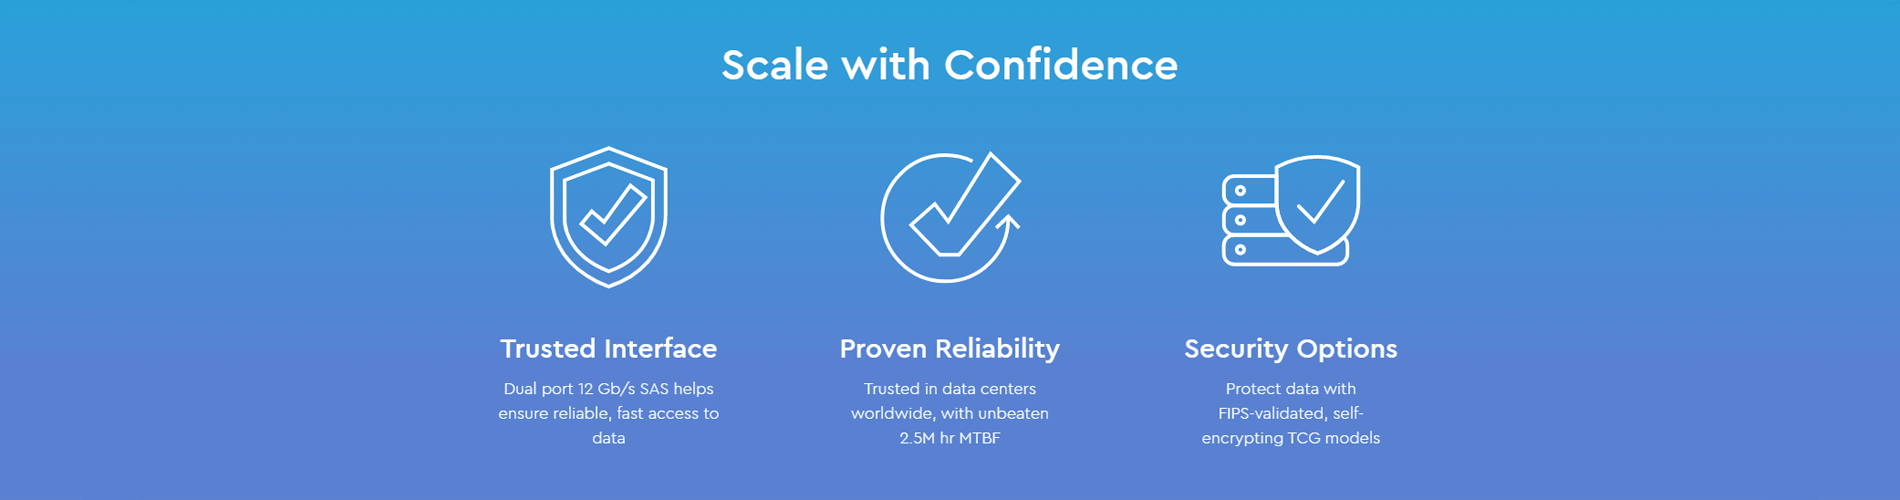 Scale with Confidence